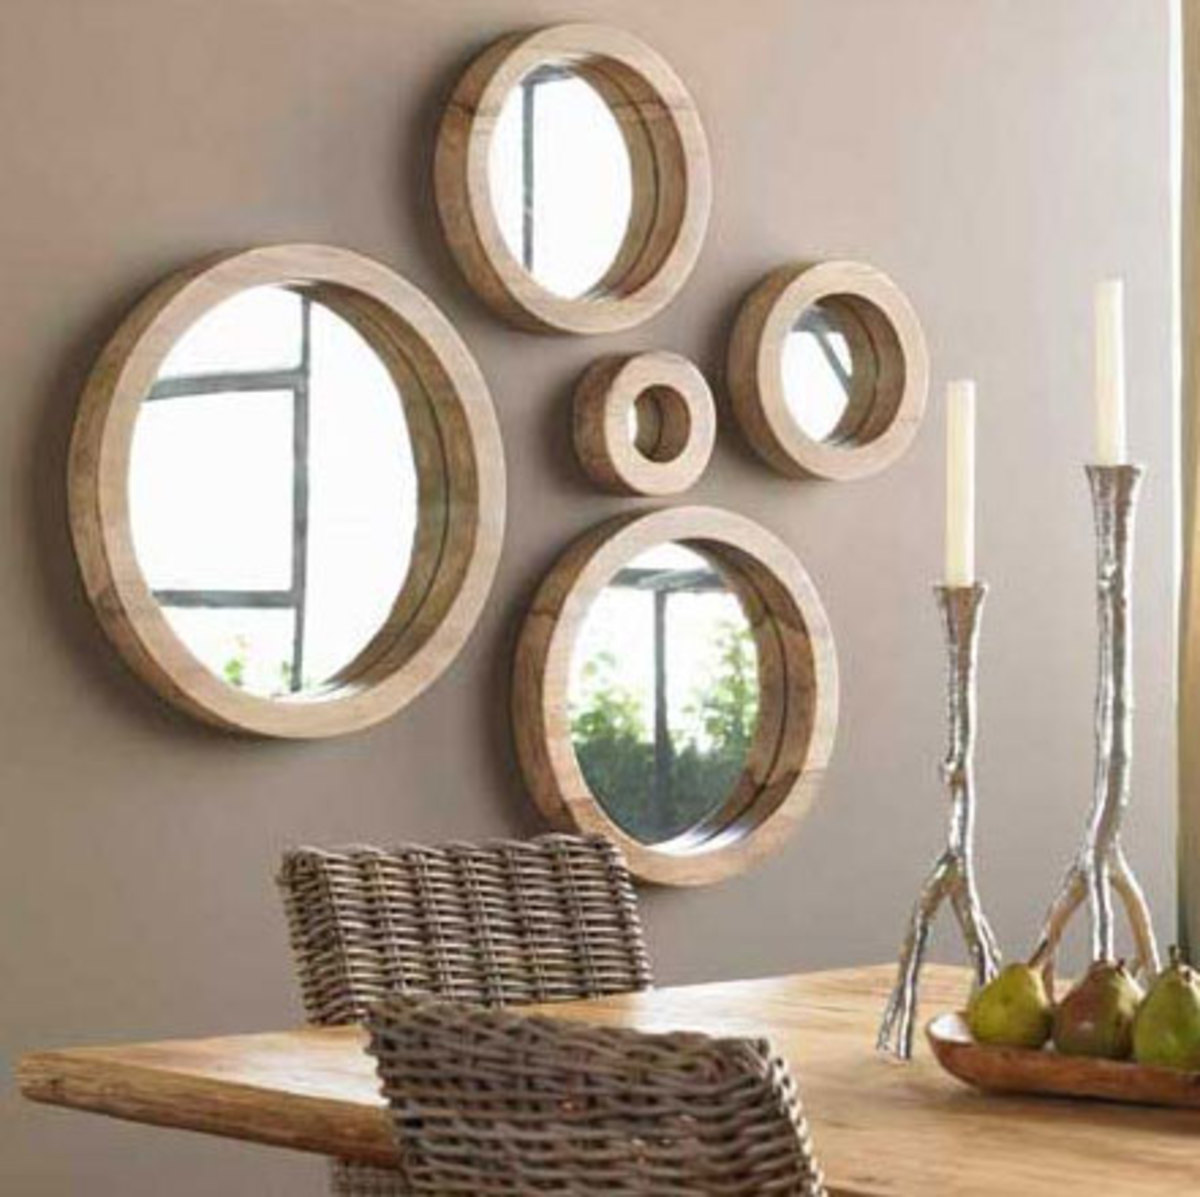 Mirrors reflect and redirect positive energy